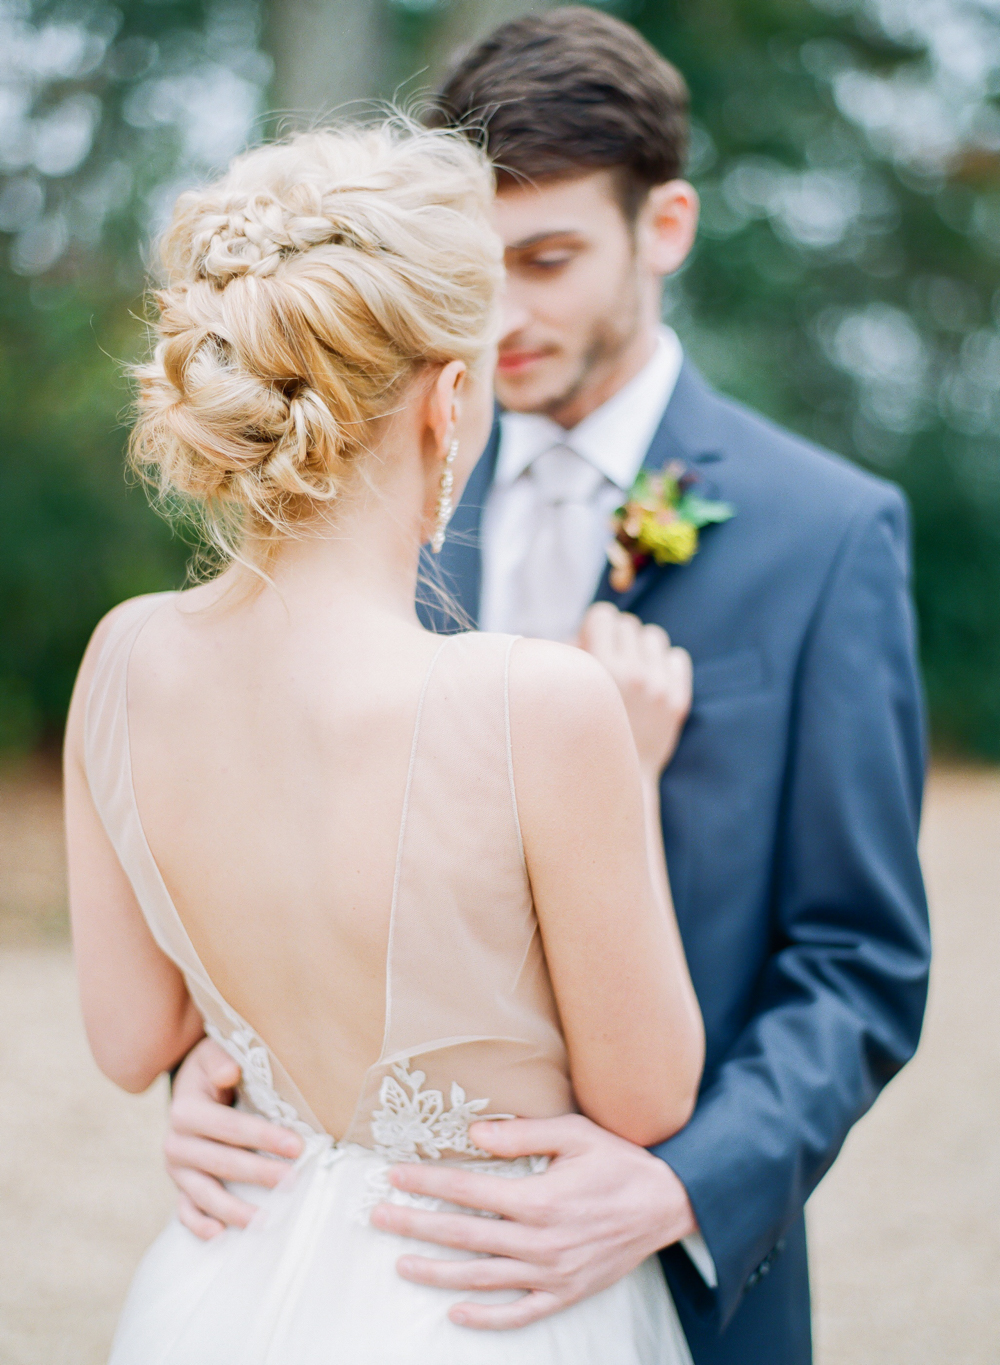 Janine_Licare_Photography_Charleston_Wedding_Romantic_Bella_Belle_Shoes_East_Made_Event_Company_BHLDN_Destination-20.jpg